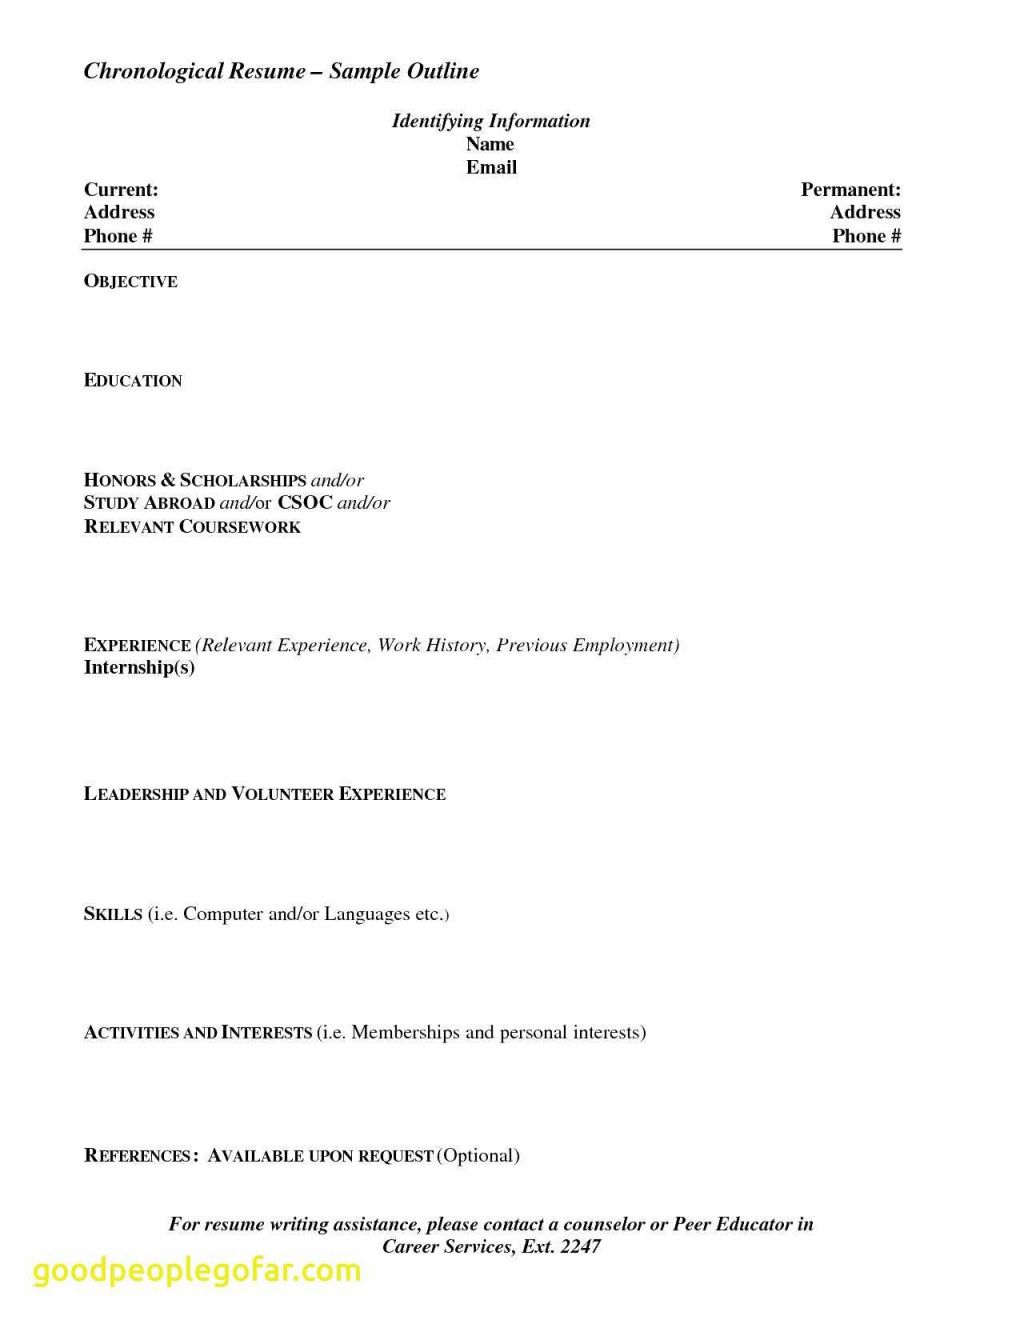 Content Writer Resume - Excellent Service Writer Resume Ow55 – Documentaries for Change